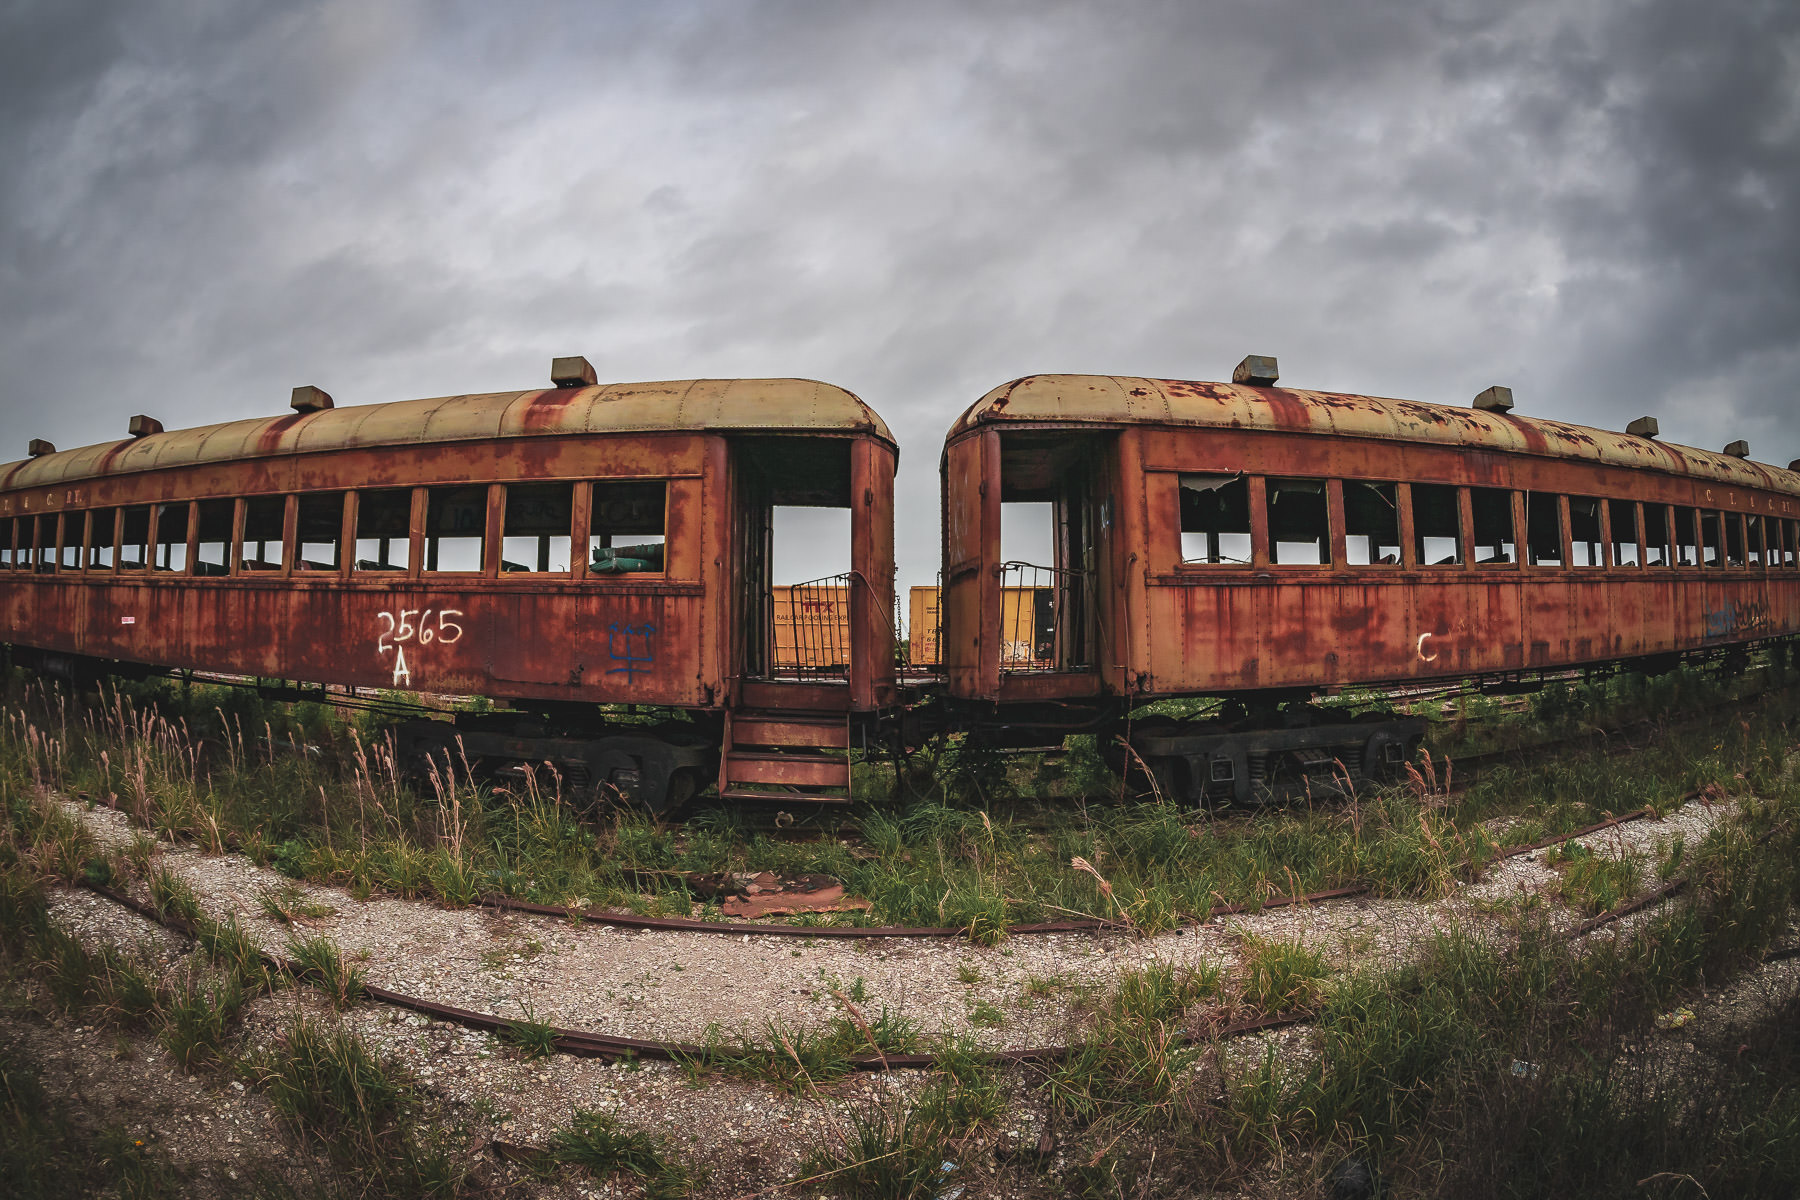 Abandoned railcars, decaying in the Union Pacific rail yard at Galveston, Texas.